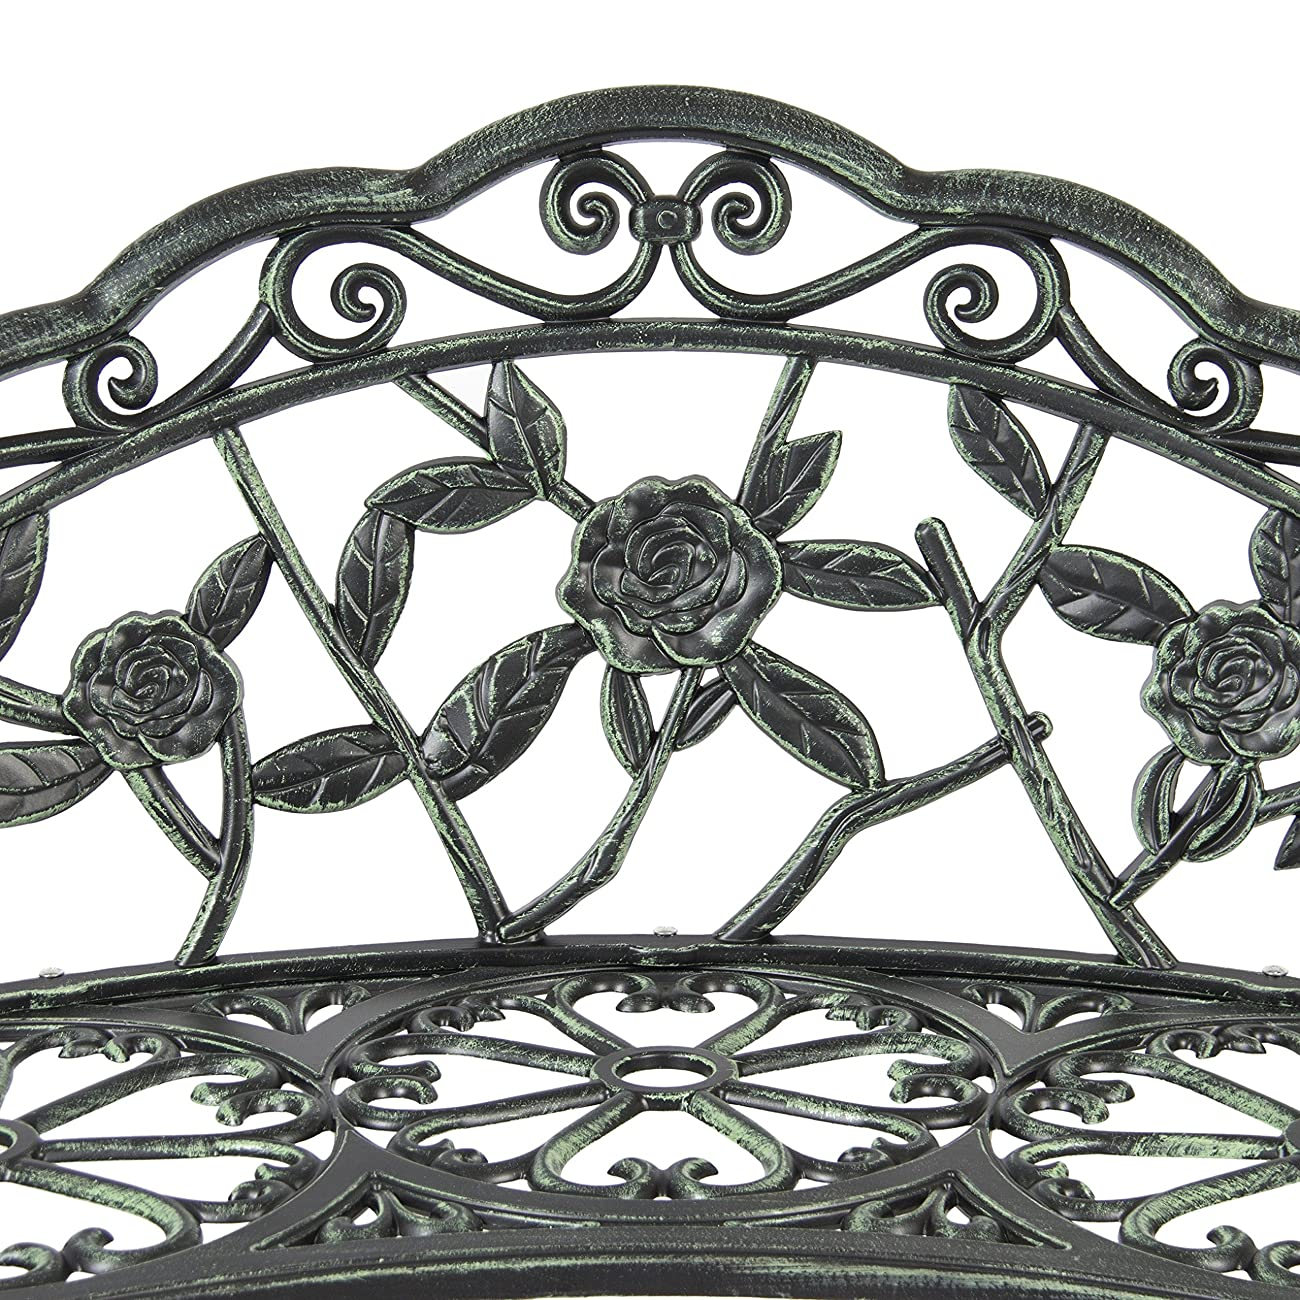 Best Choice Products BCP Outdoor Patio Garden Bench Cast Iron Antique Rose Backyard Porch Furniture 3